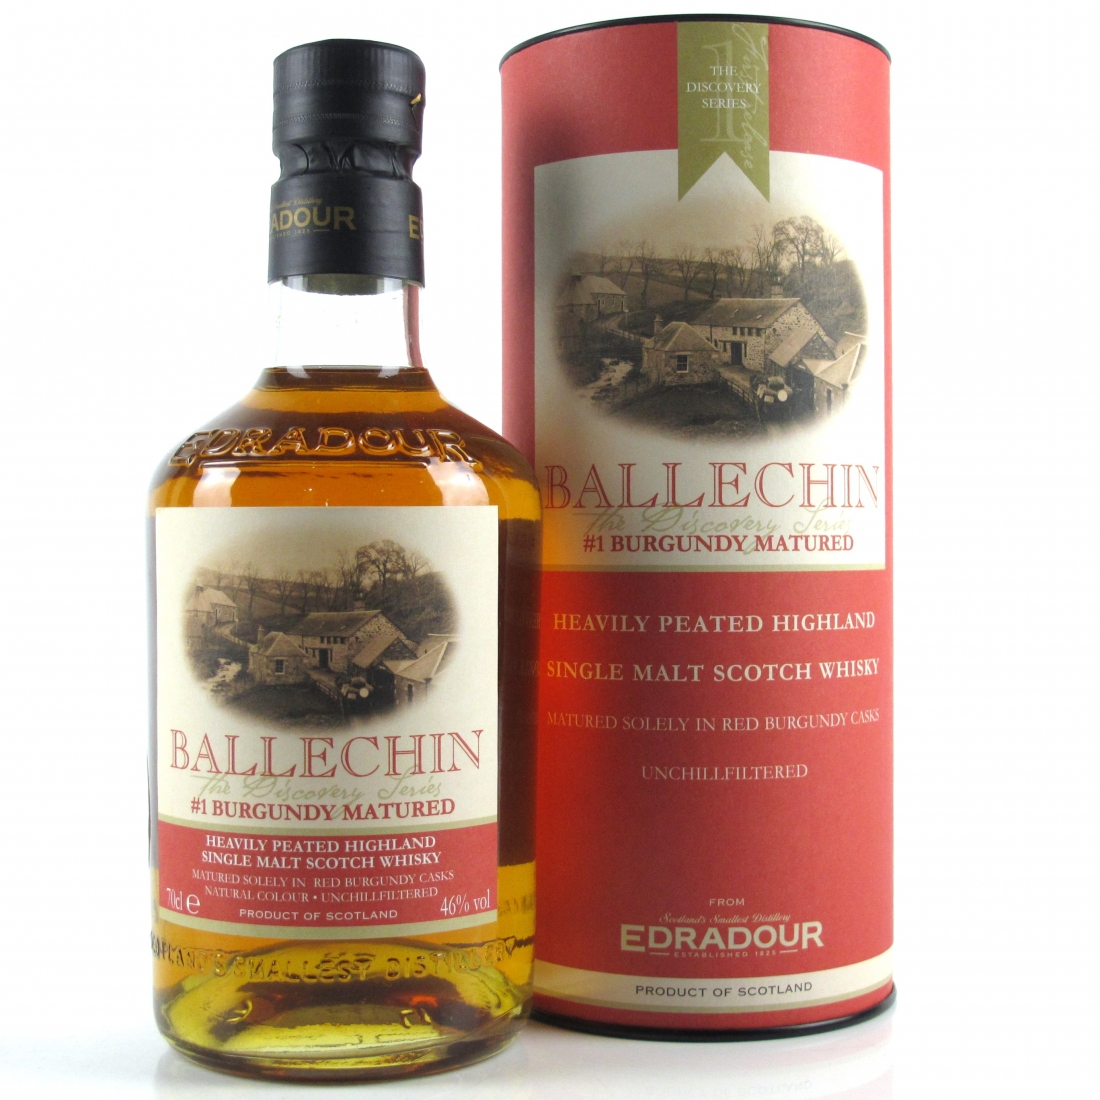 Edradour Ballechin Batch #1 / Burgundy Matured​